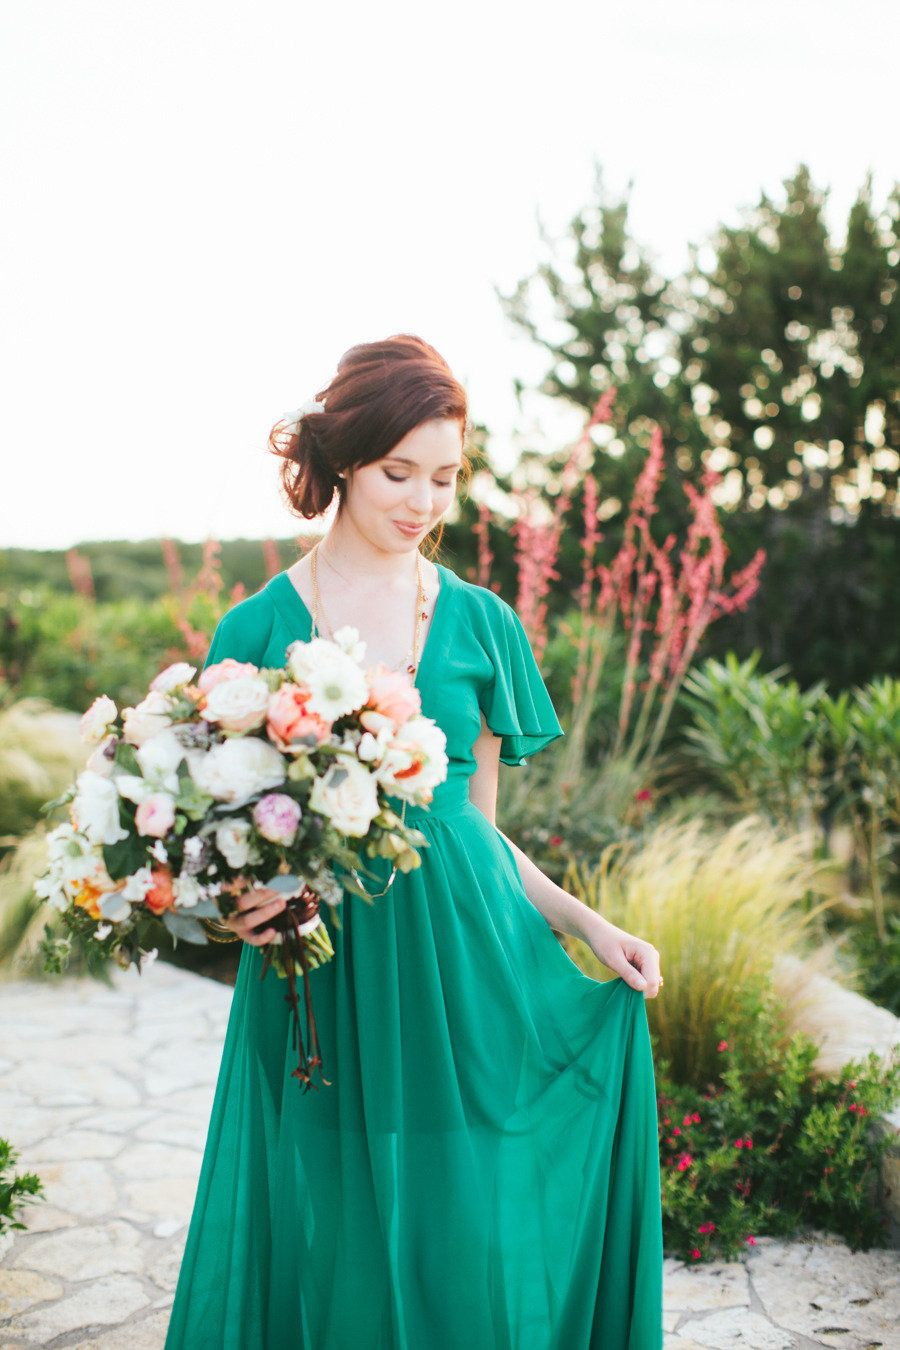 Makeup with emerald green dress  Spanish Inspired Shoot from Loft Photographie  Emerald green